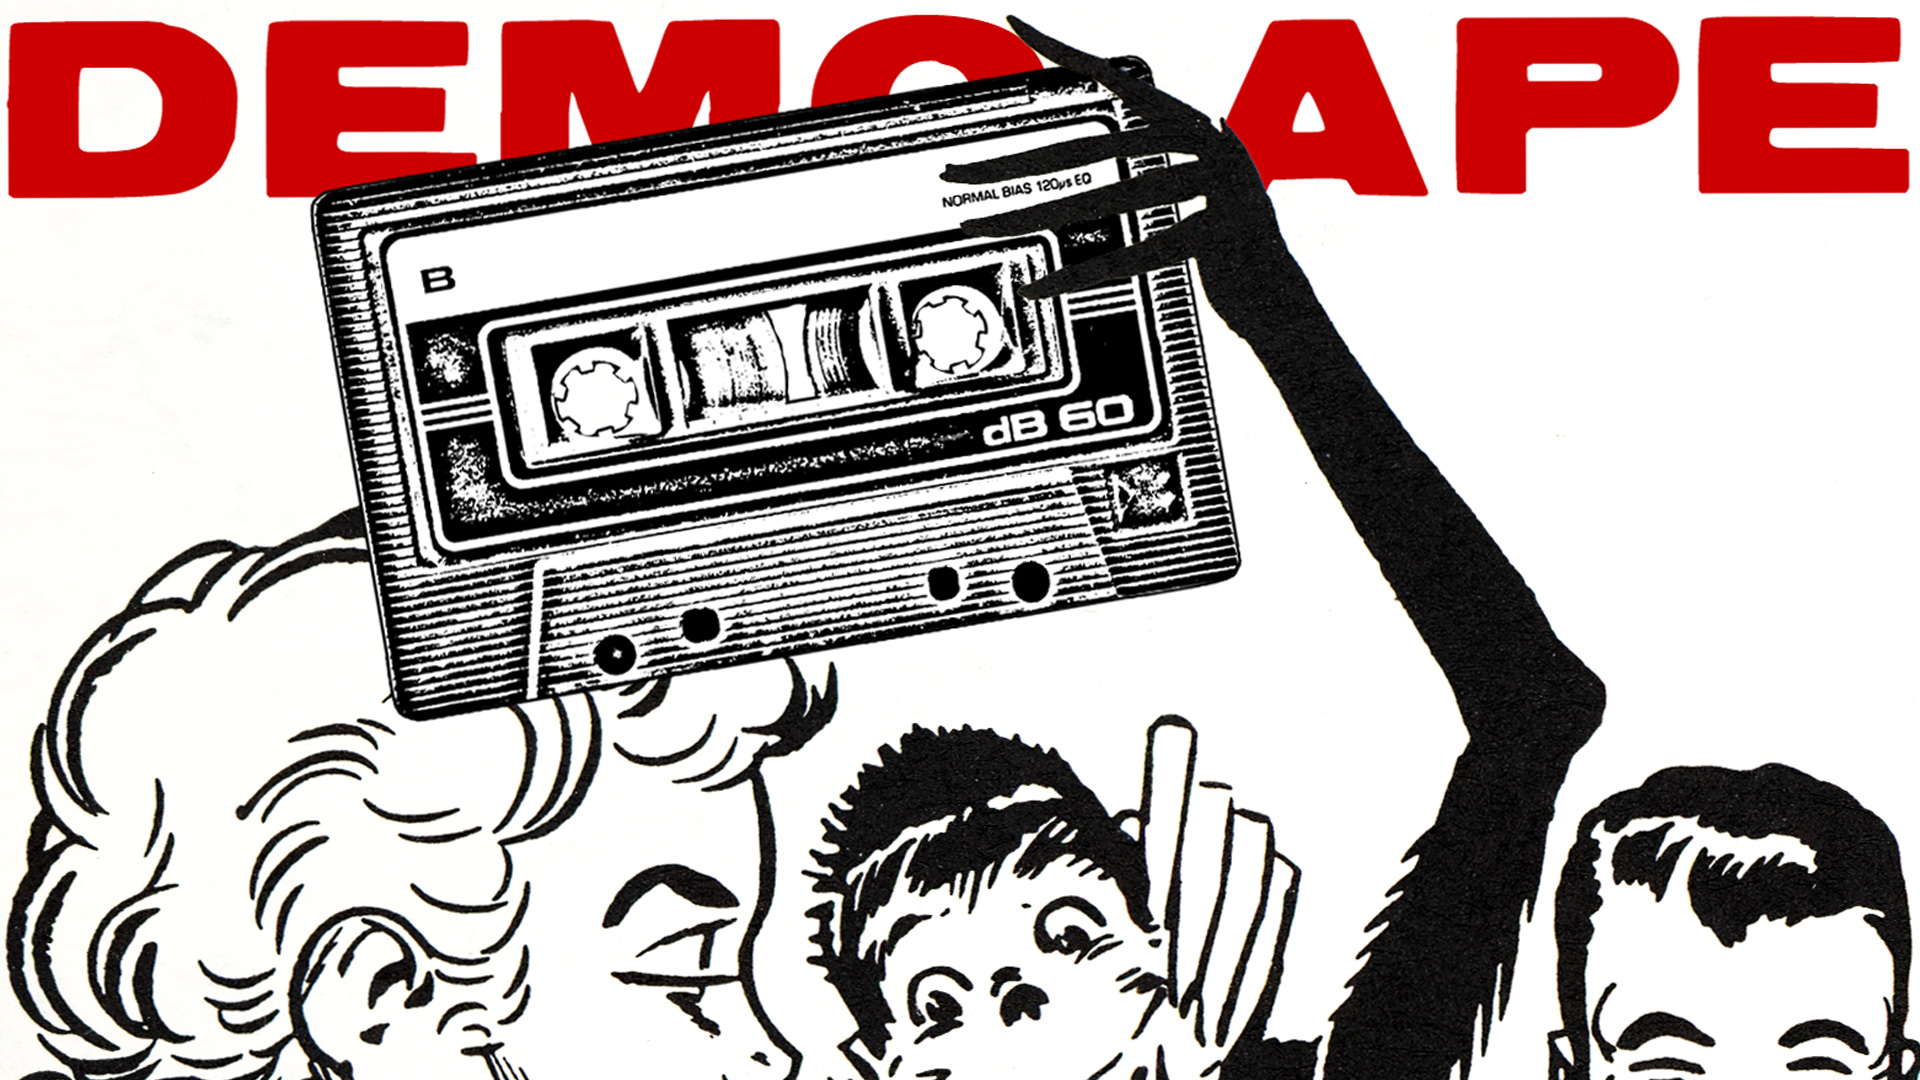 Demo Ape - Digitized 90's Demo Tapes